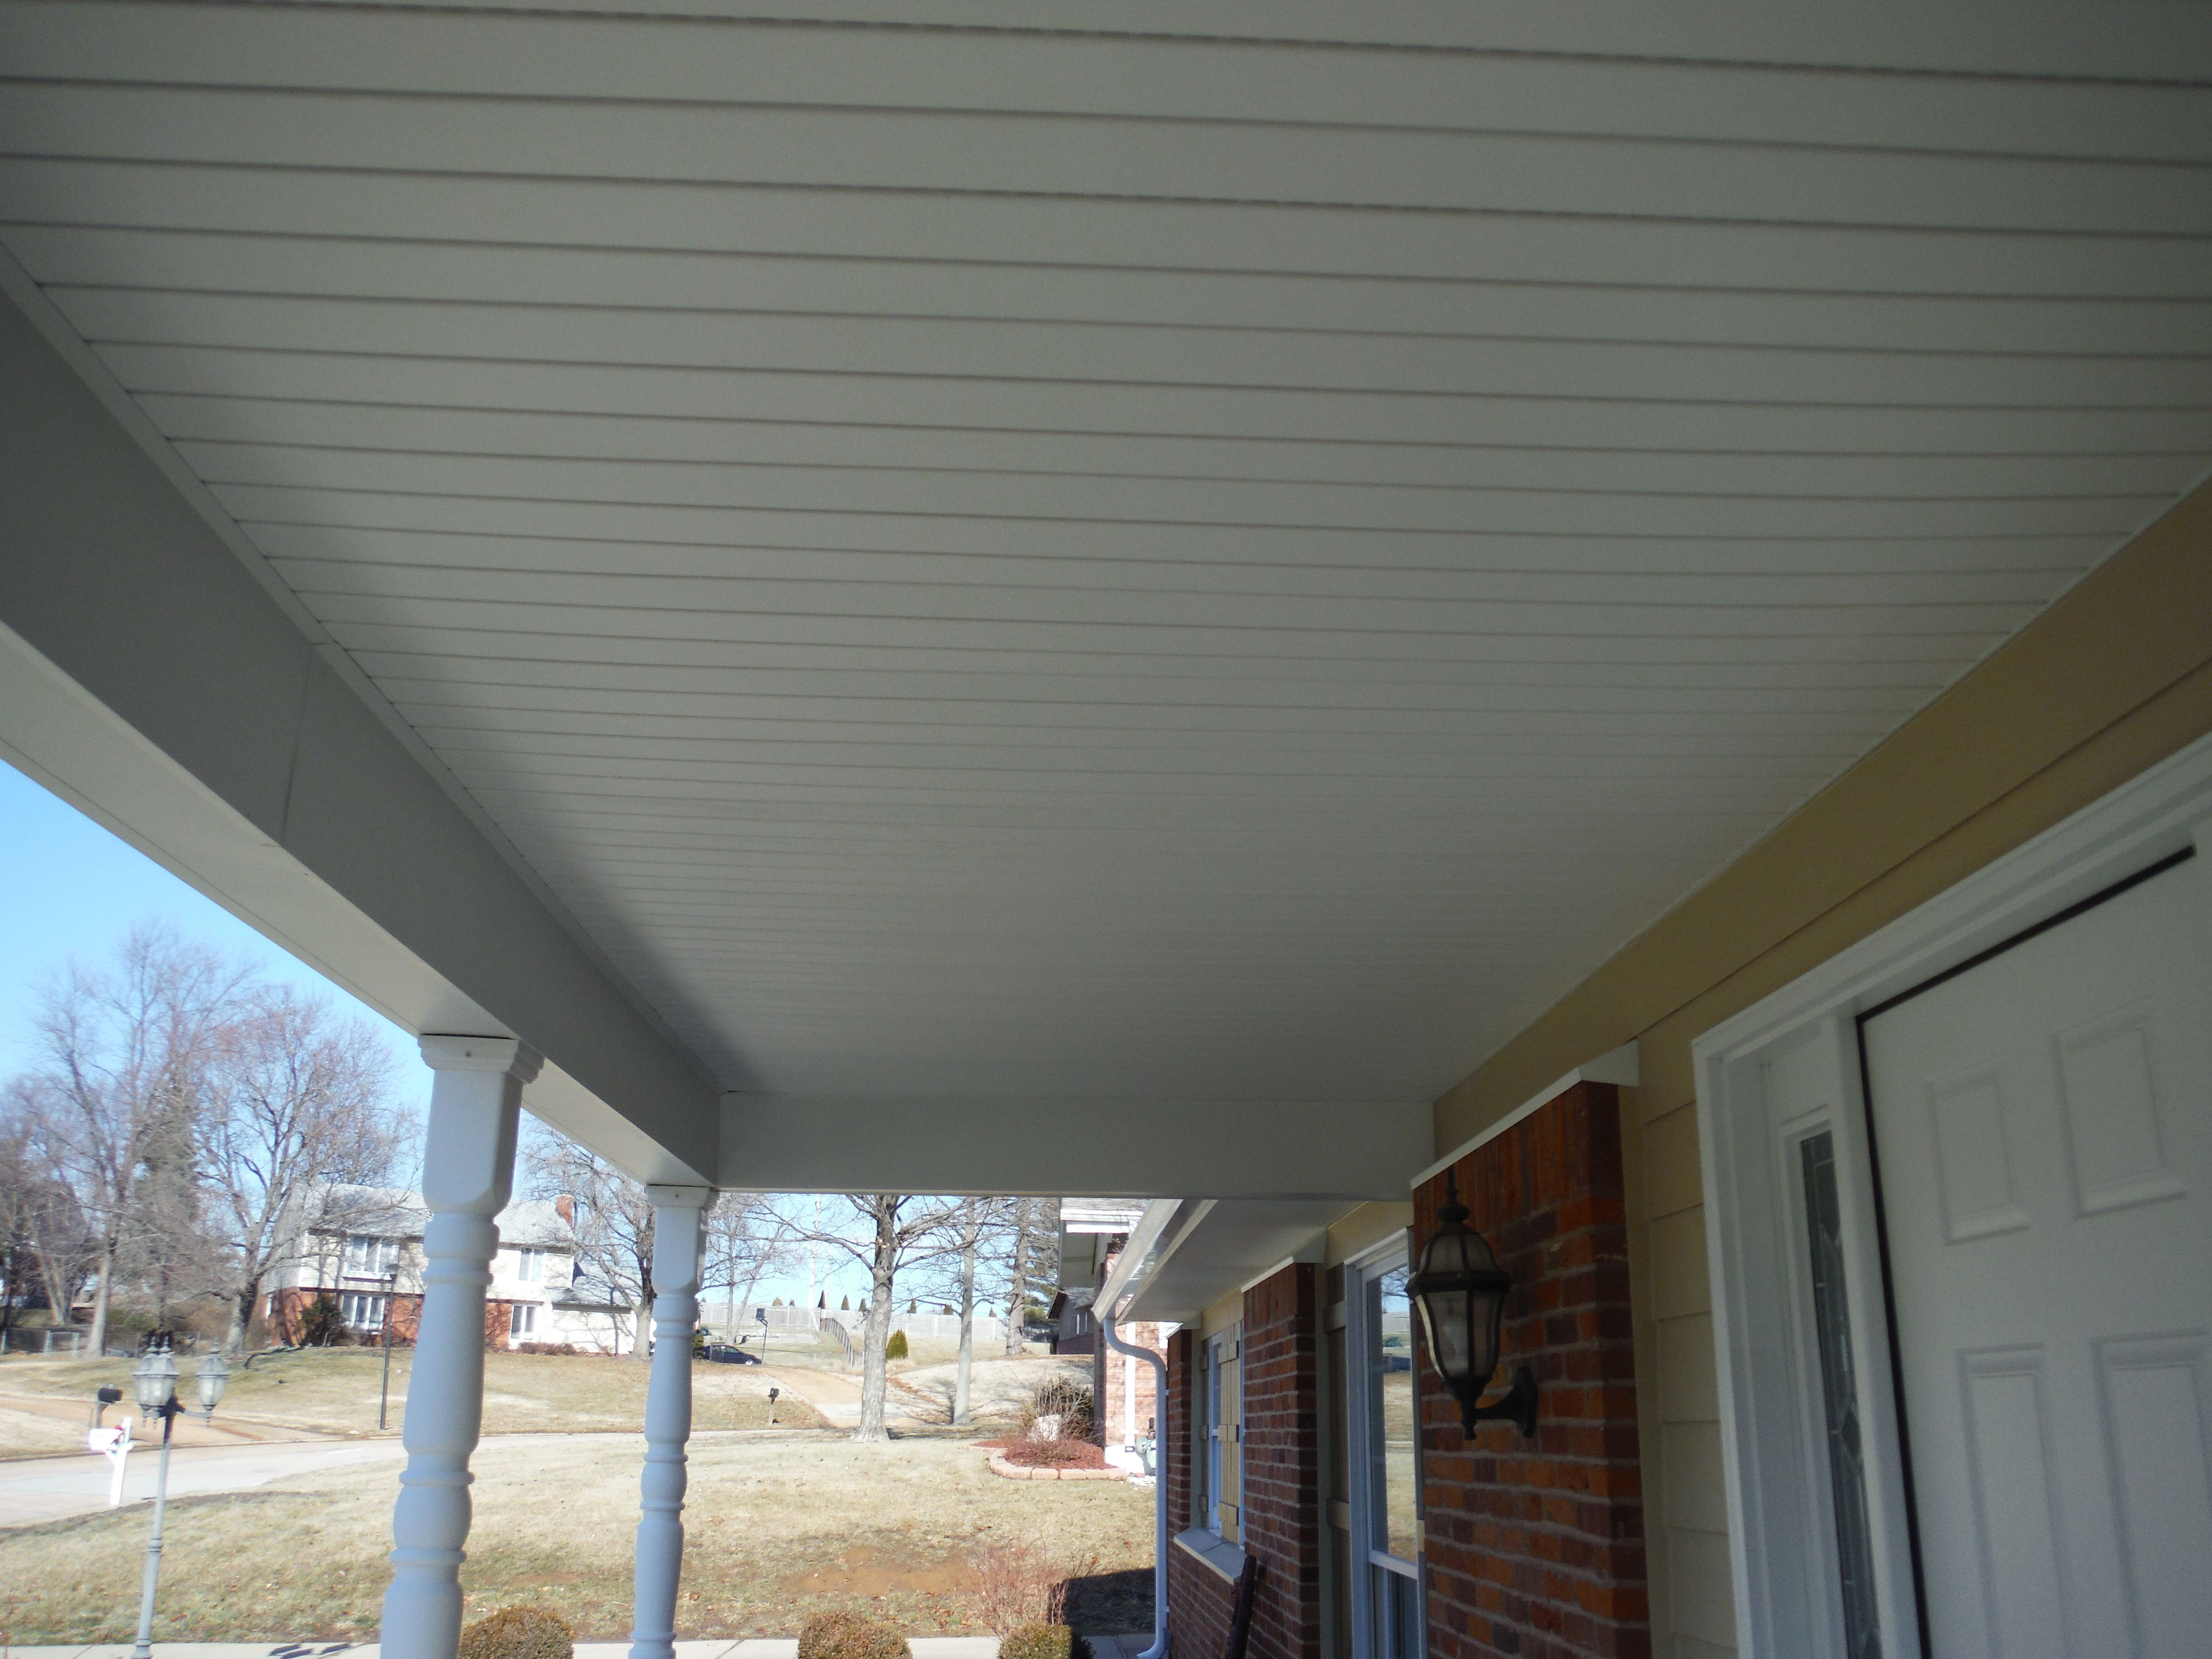 New custom porch ceiling built out of vinyl soffit